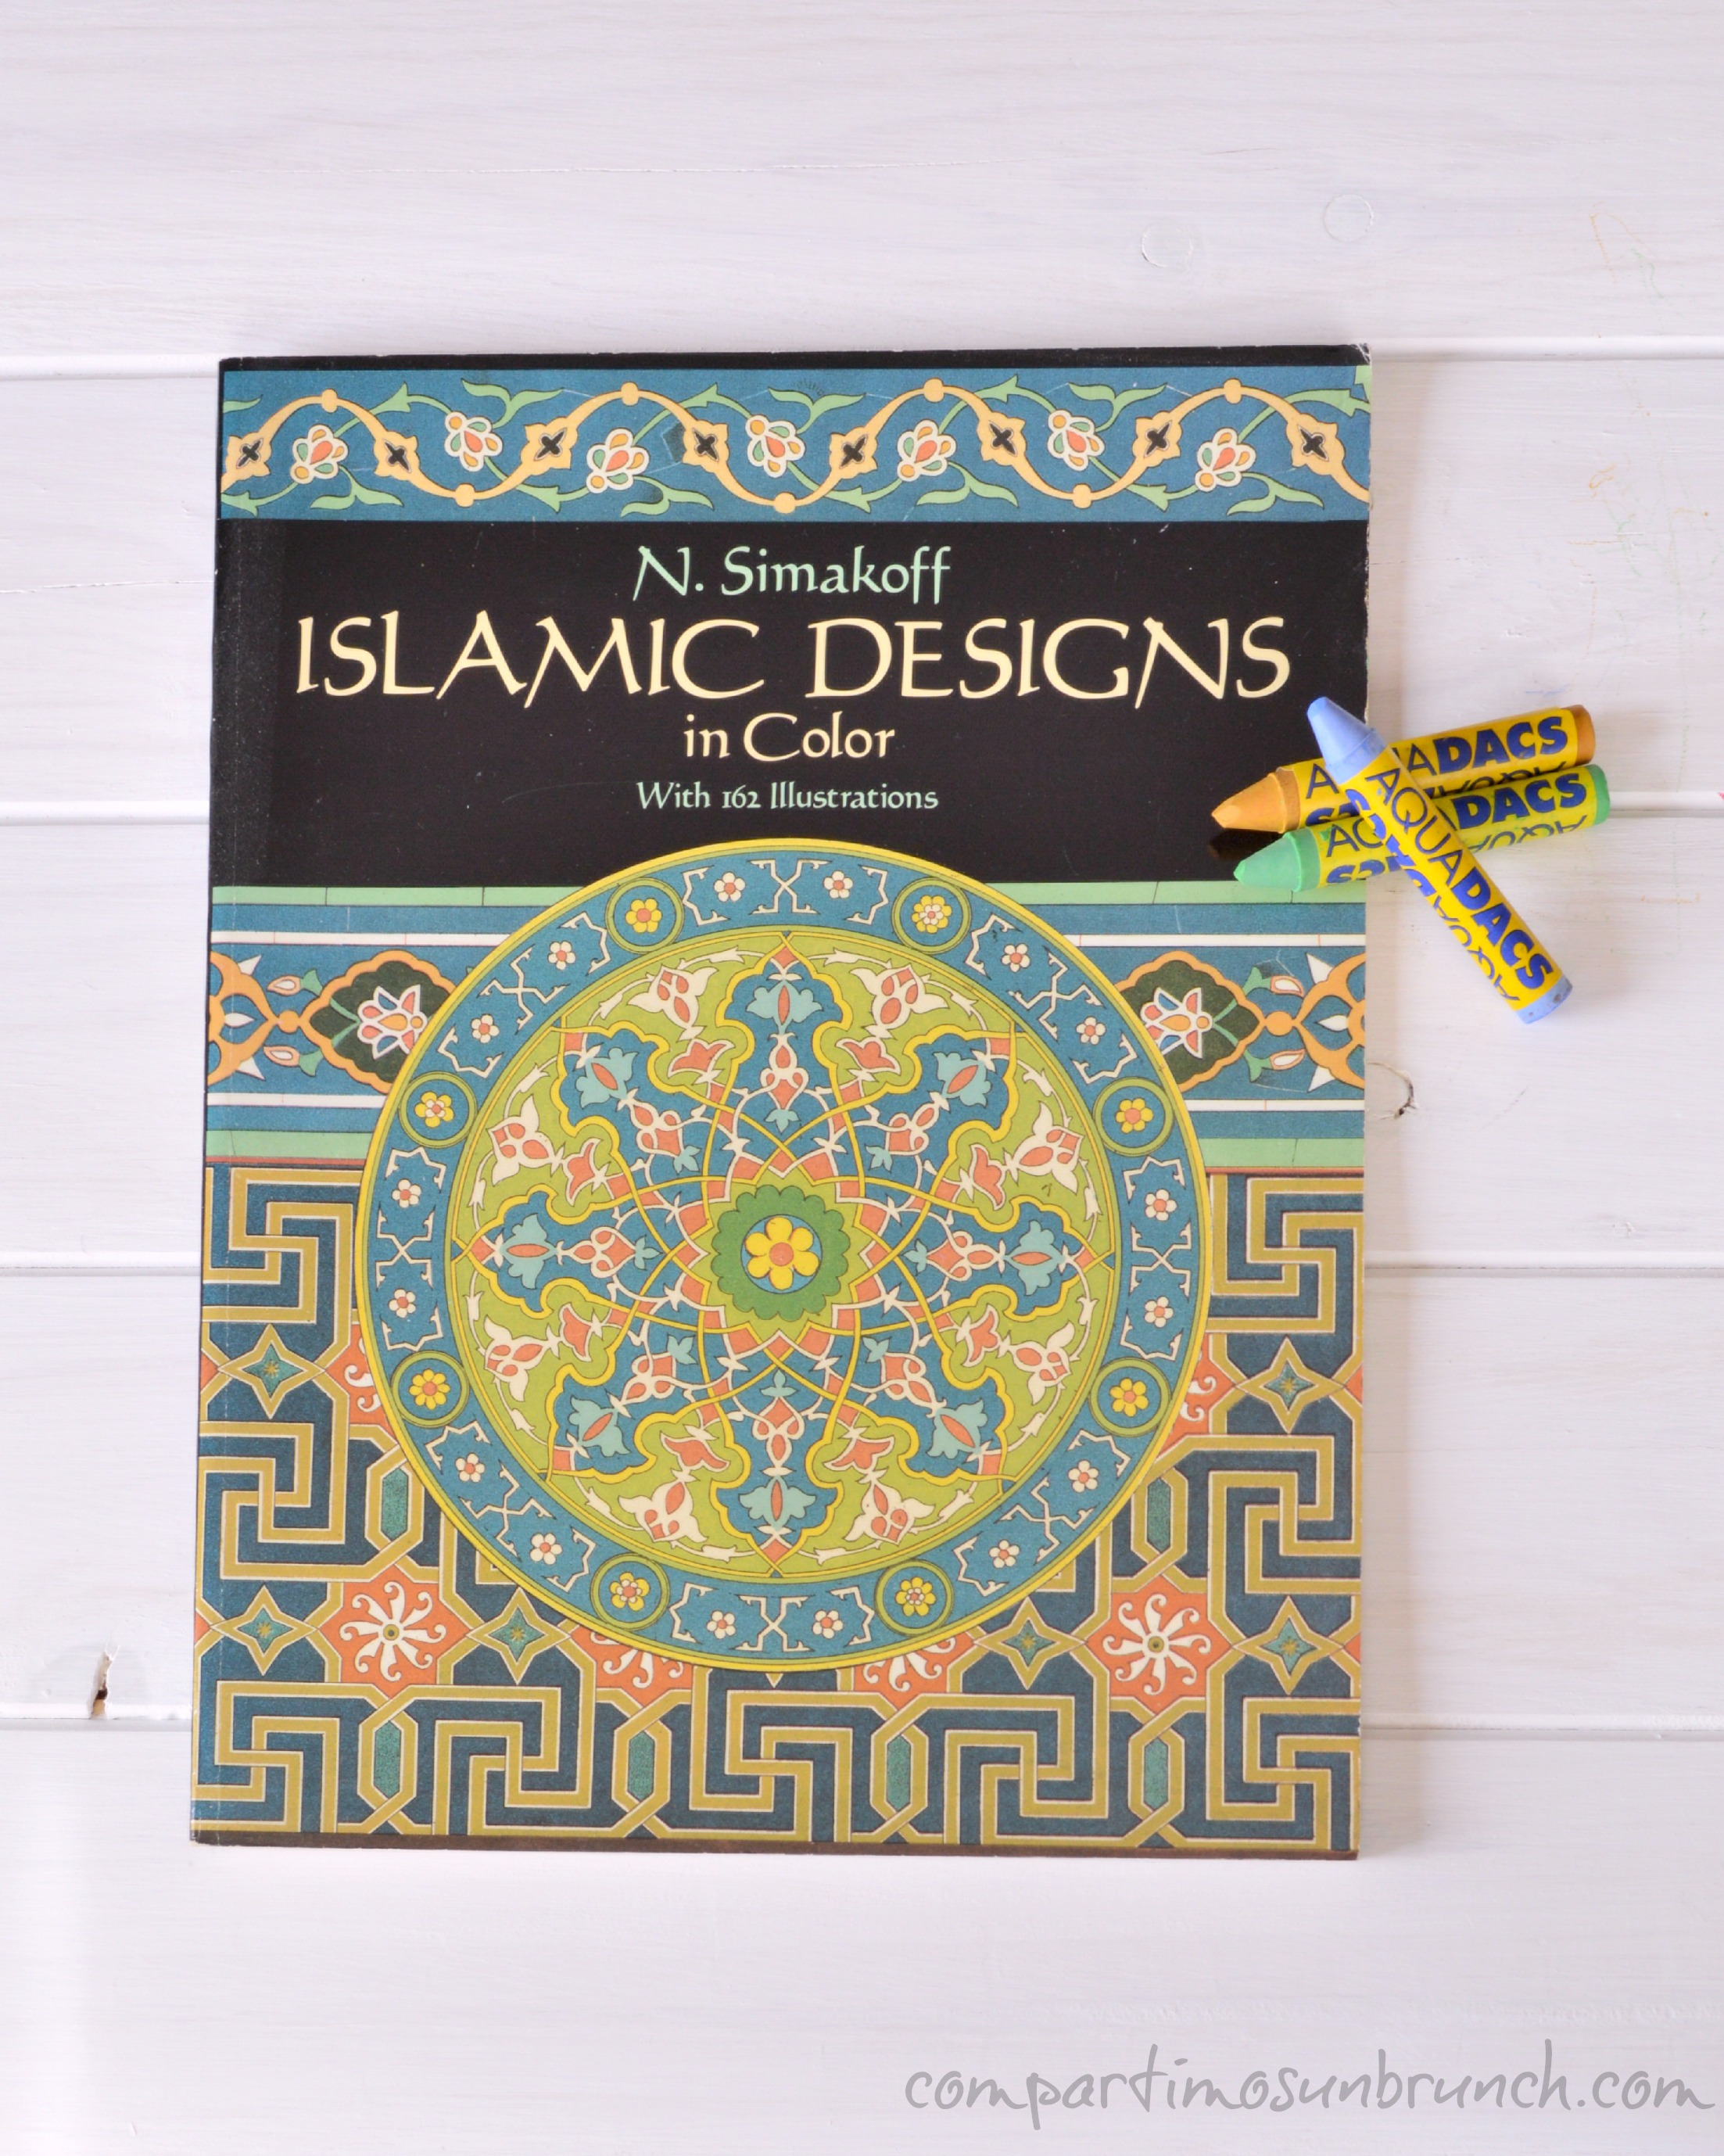 Libros Islamicos Mandalas Para Colorear Compartimos Un Brunch